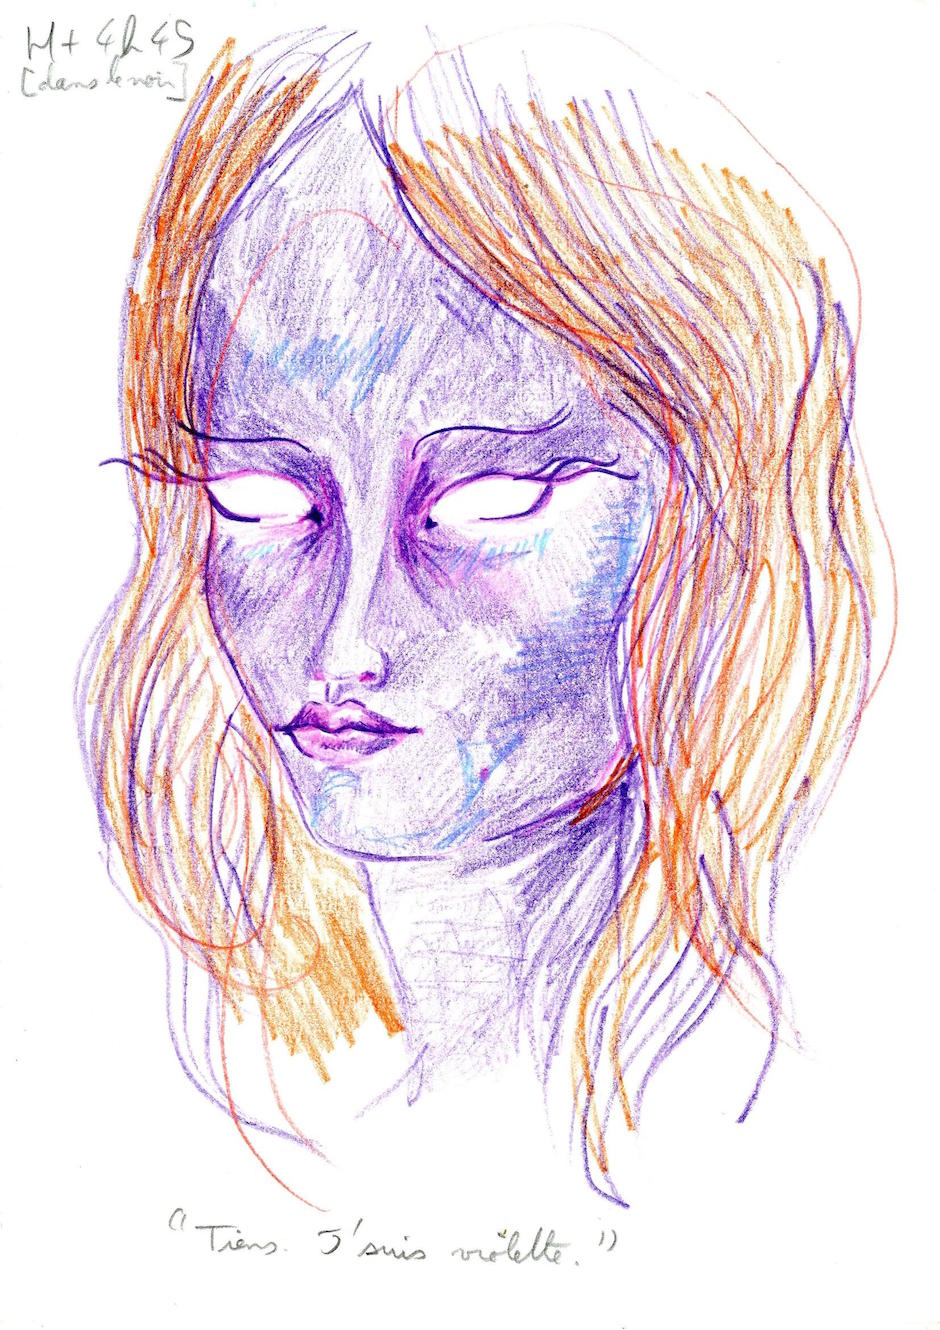 H + 4h 45m (from this moment, she drew with very dim light) « Here you go. I'm violet. » Later: « Usually, I draw the eyes at the very end, because I don't want the picture to look at me while I'm drawing it. Here, I didn't want the picture to look at me at all. »